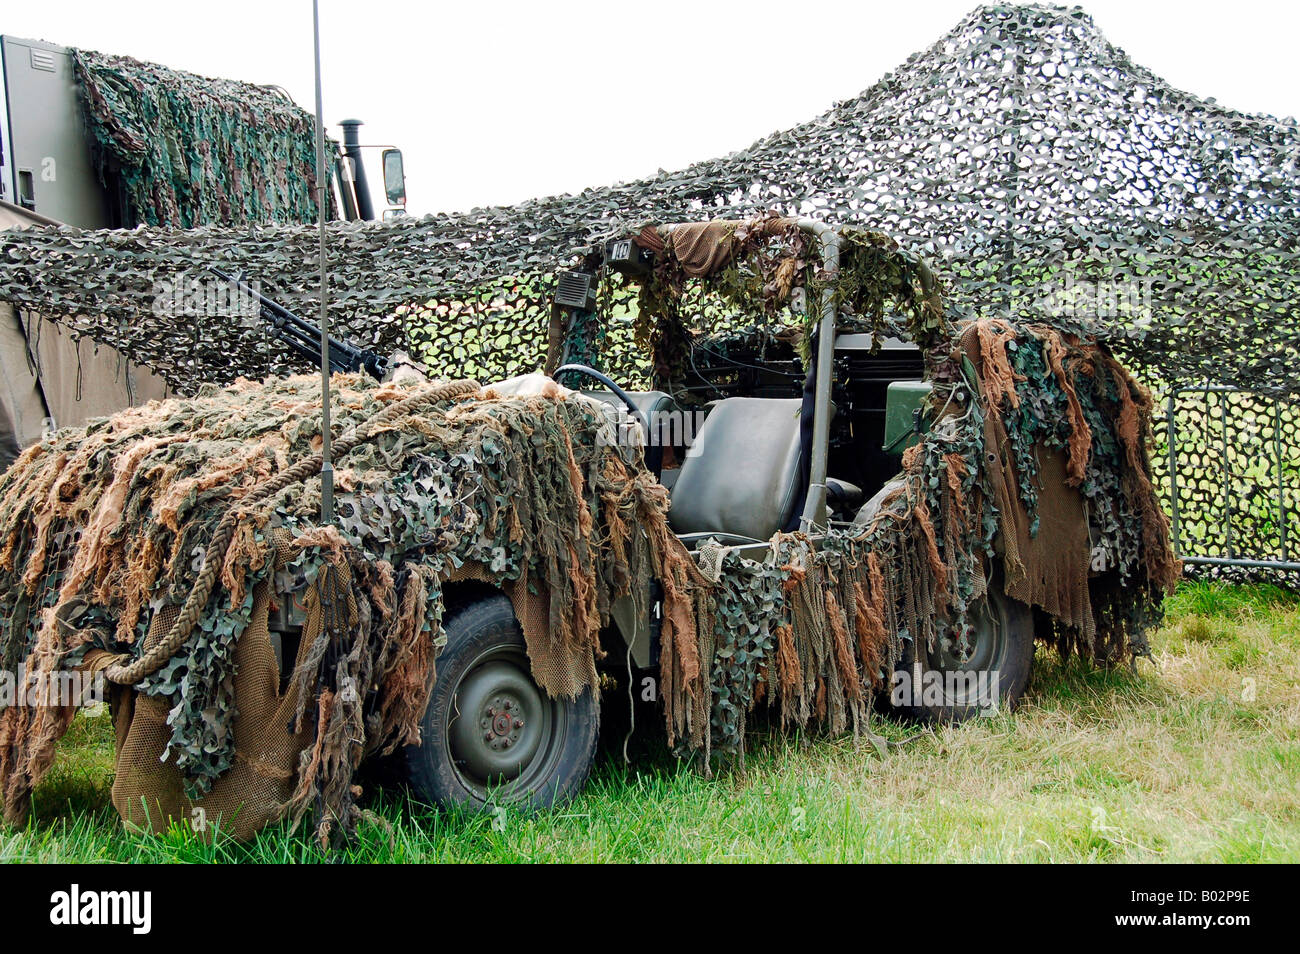 VW Iltis of the Special Forces Group of the Belgian Army. - Stock Image